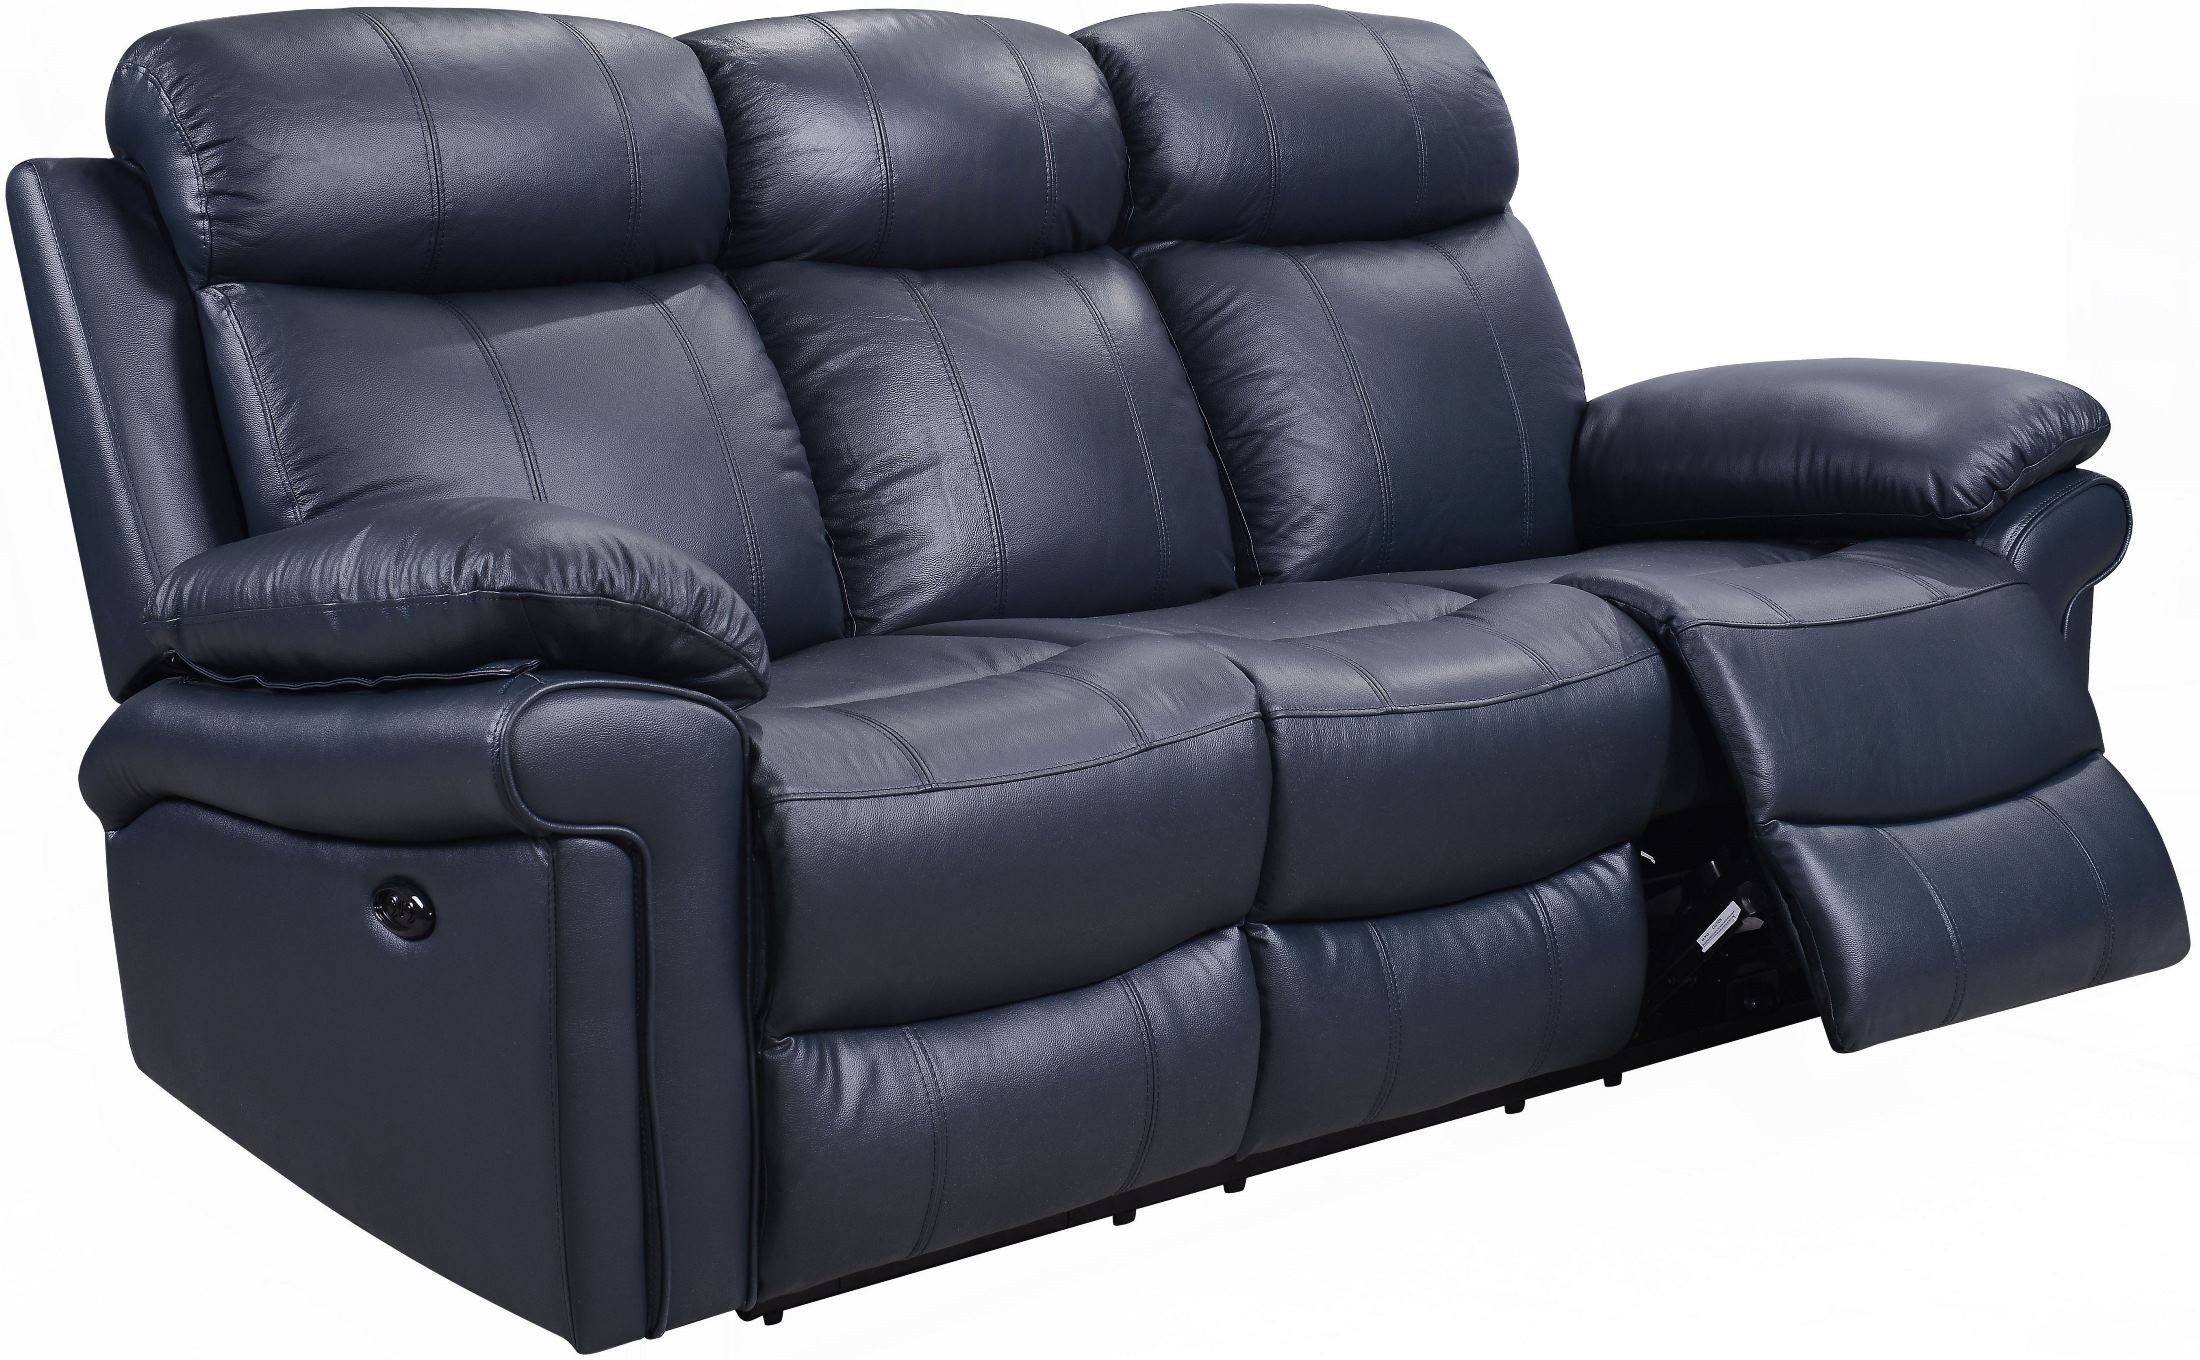 Shae Joplin Blue Leather Power Reclining Sofa 1555 E2117 031041lv Leather Italia